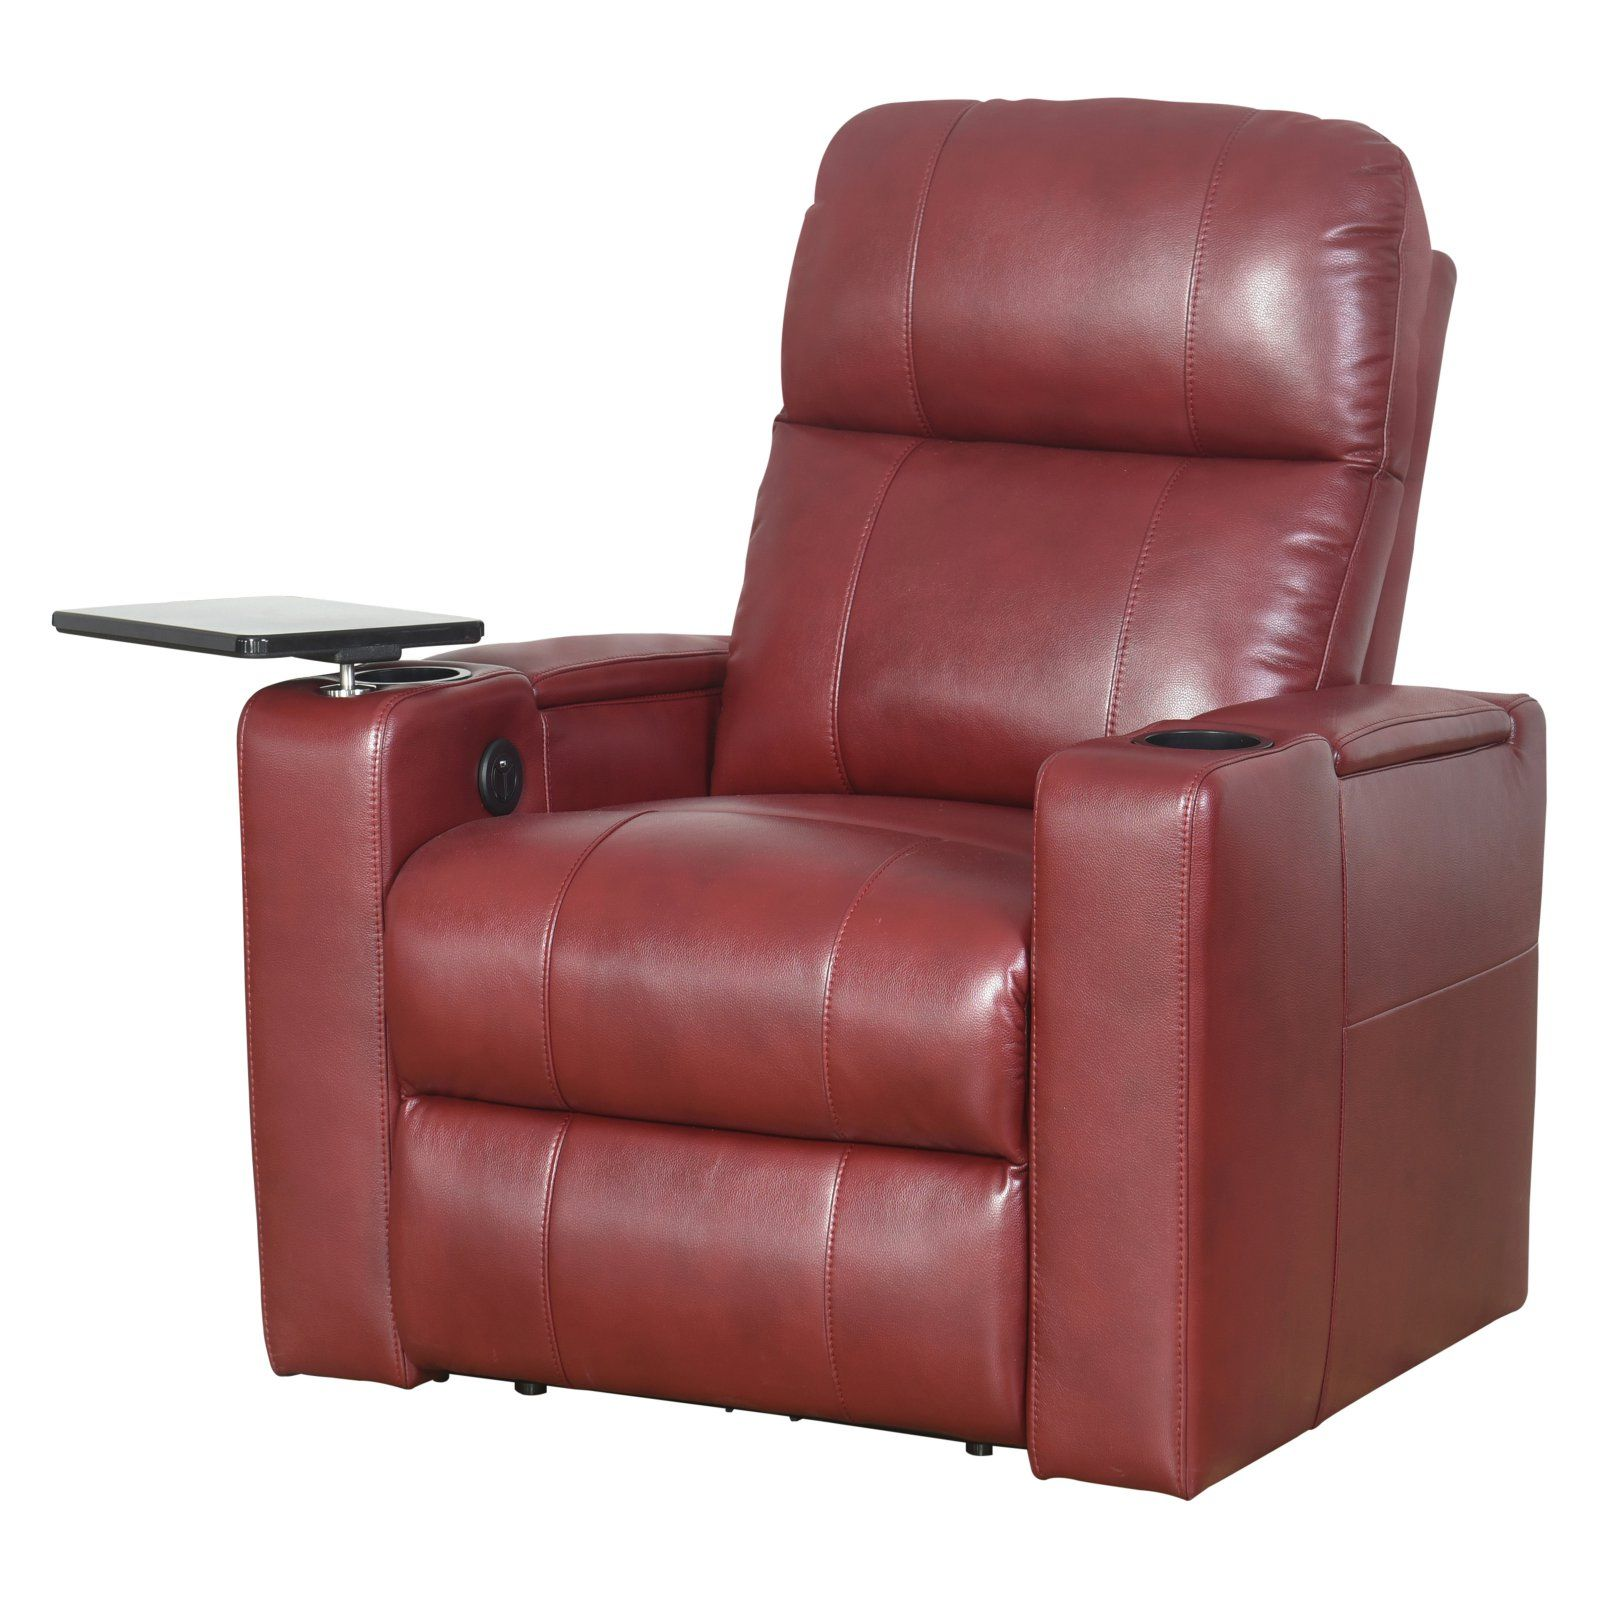 Incredible Abbyson Sage Power Leather Recliner In 2019 Products Uwap Interior Chair Design Uwaporg